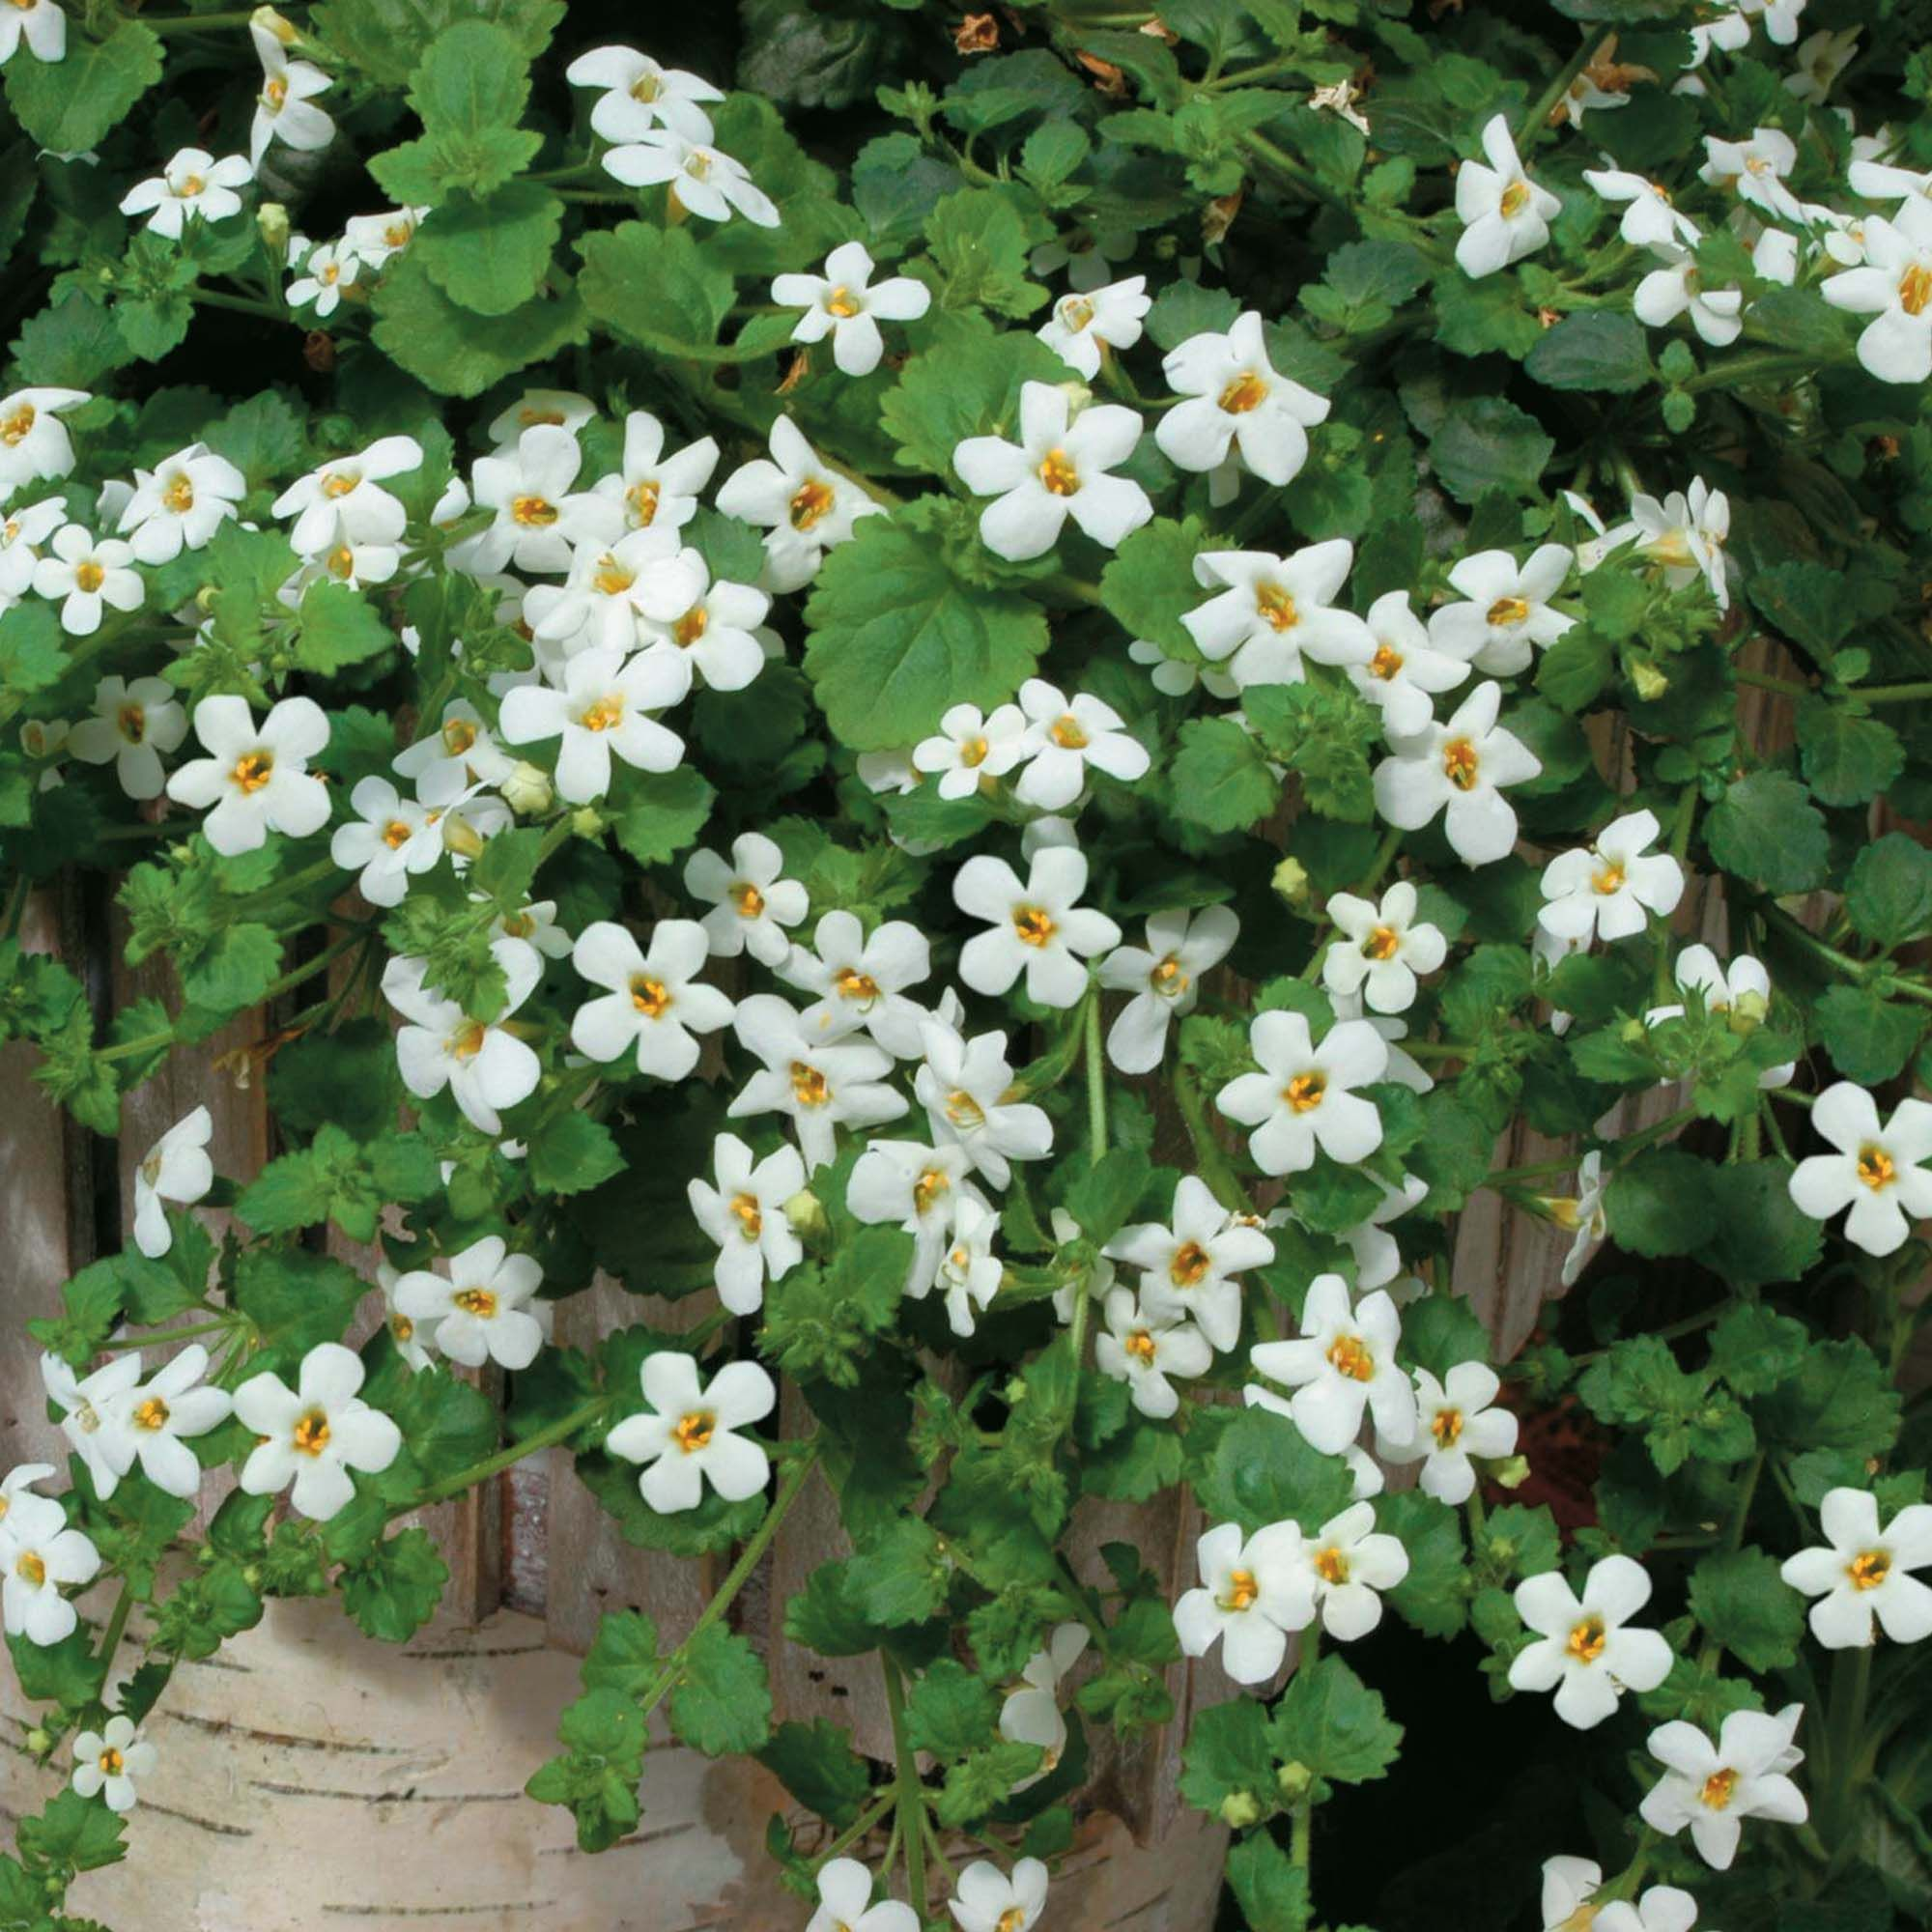 Bacopa cordata snowtopia white half hardy annual seeds at last available from seed bacopa snowtopia is a super long blooming trailing annual that sends forth small white blooms from spring through fall izmirmasajfo Images